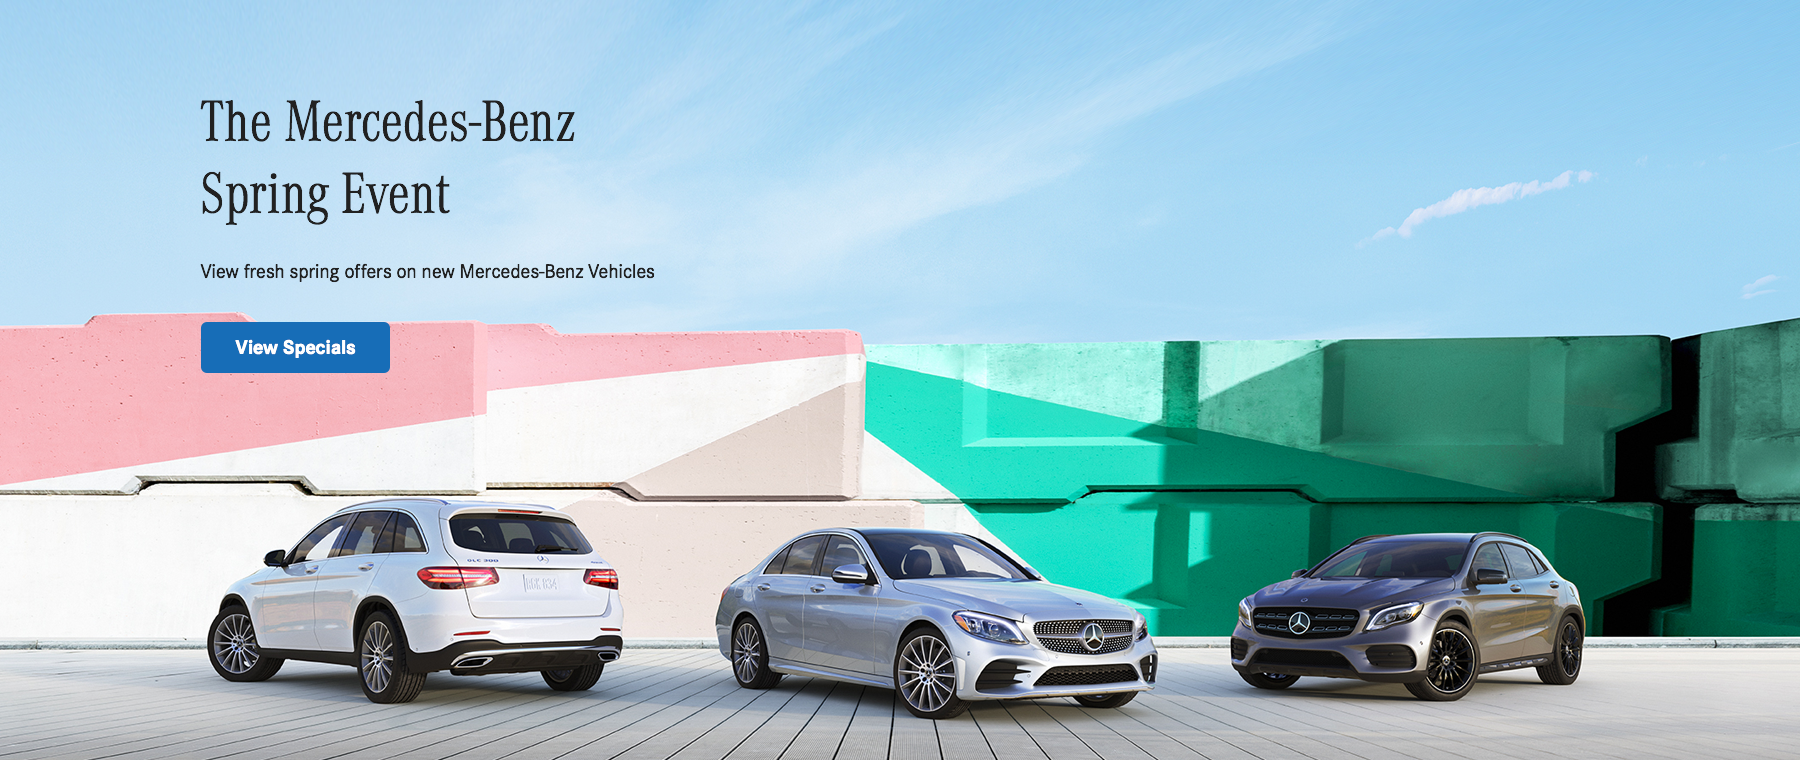 The Mercedes-Benz Spring Event